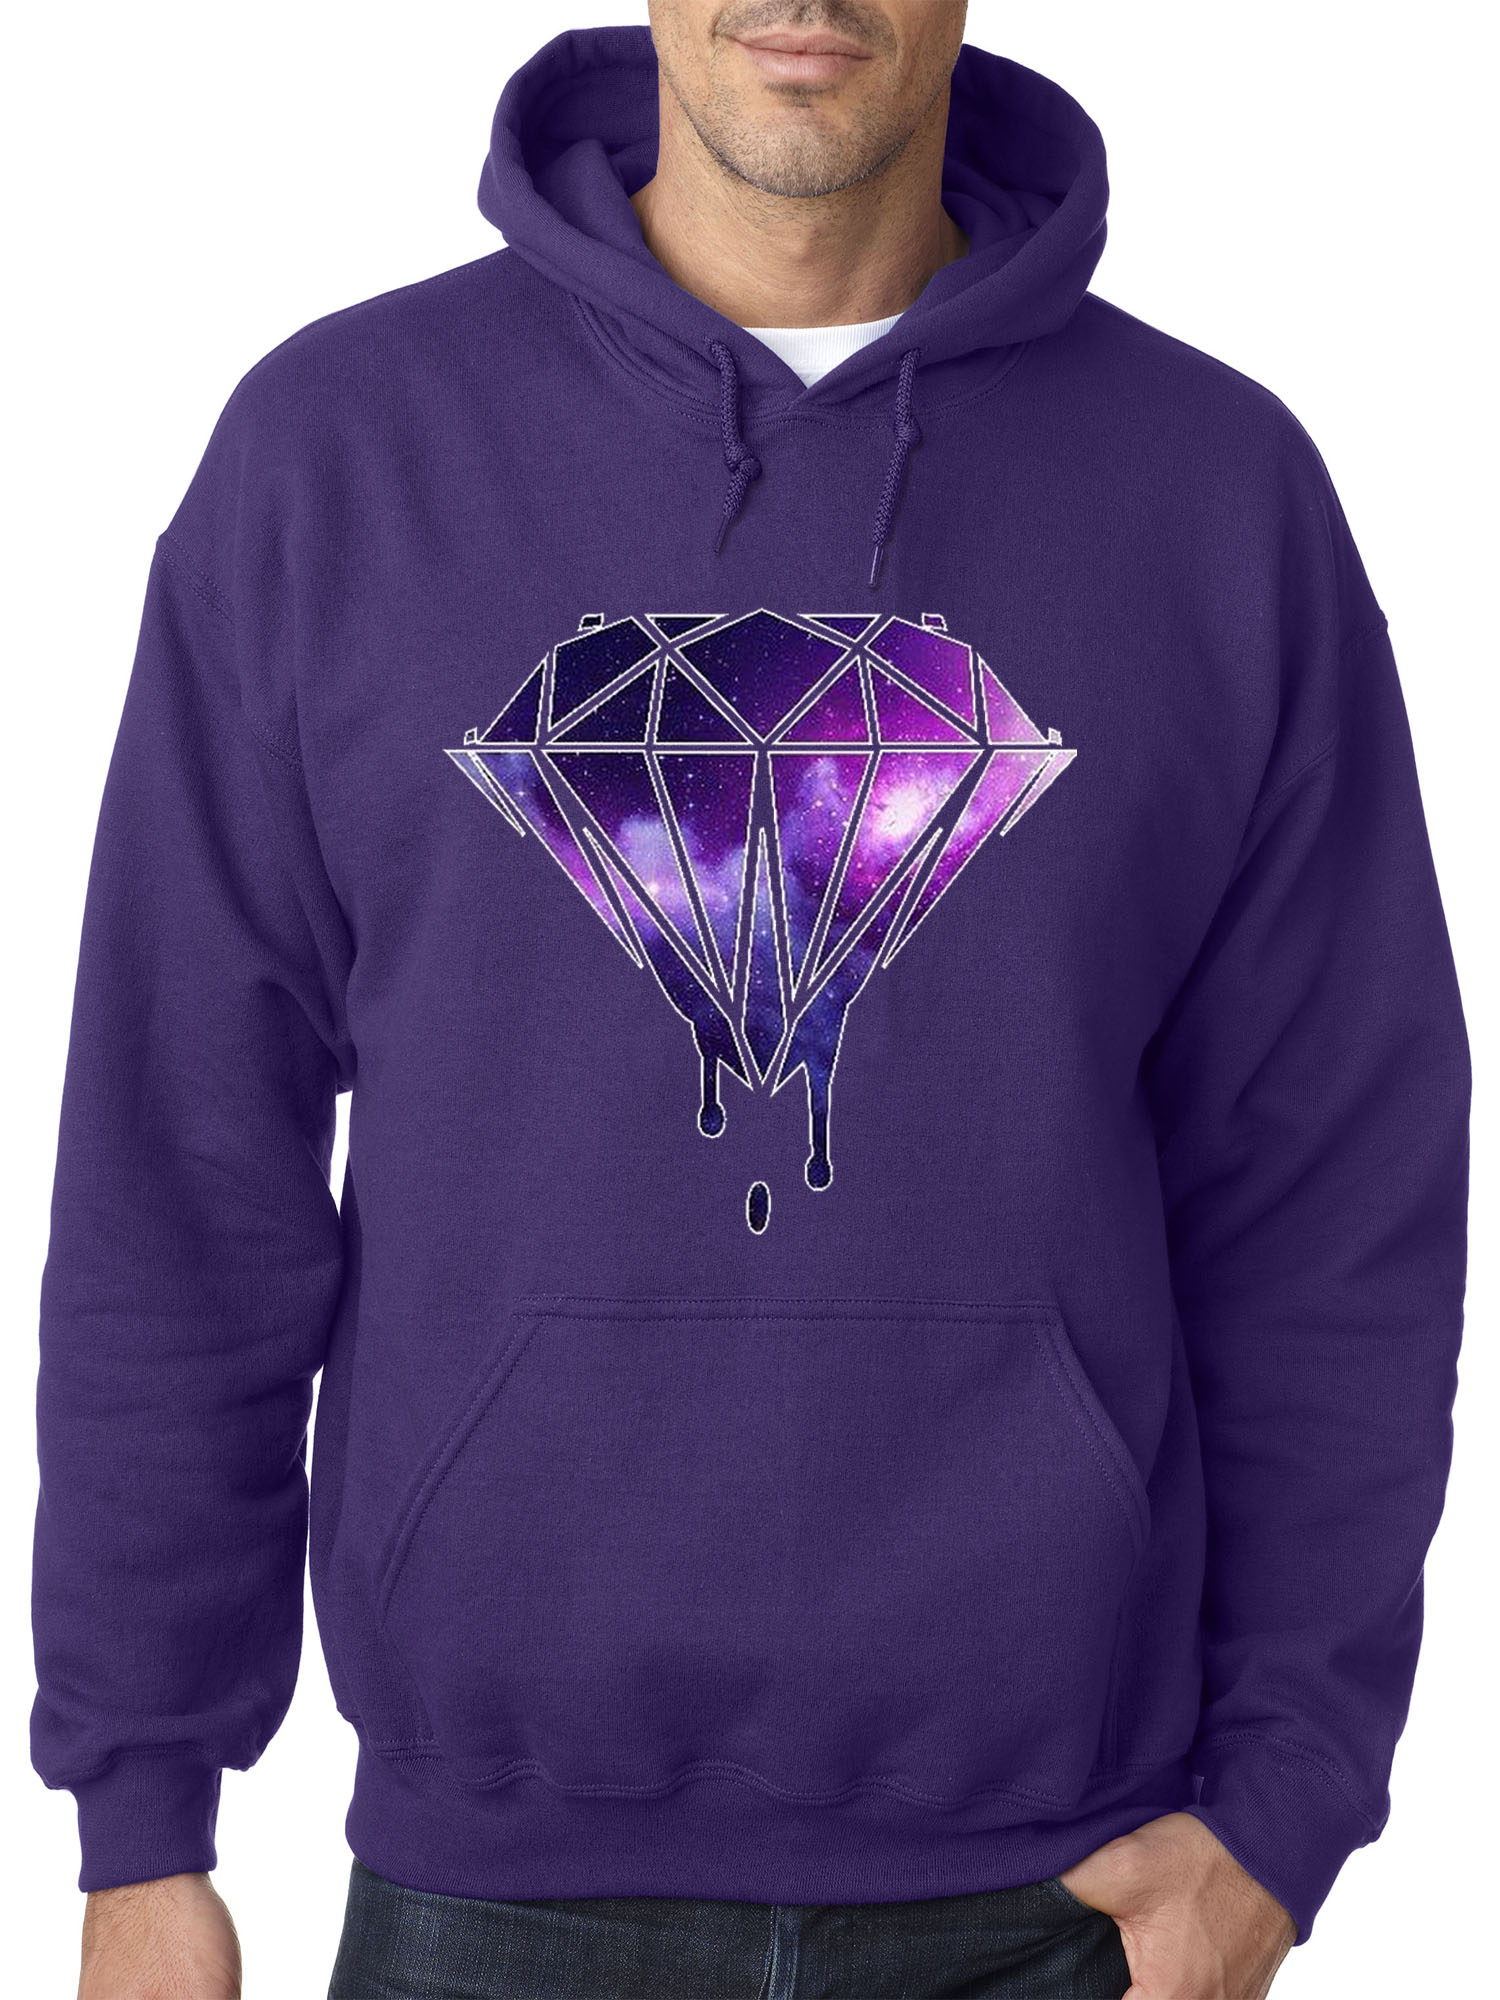 New Way 089 - Hoodie Galaxy Bleeding Dripping Diamond Sweatshirt